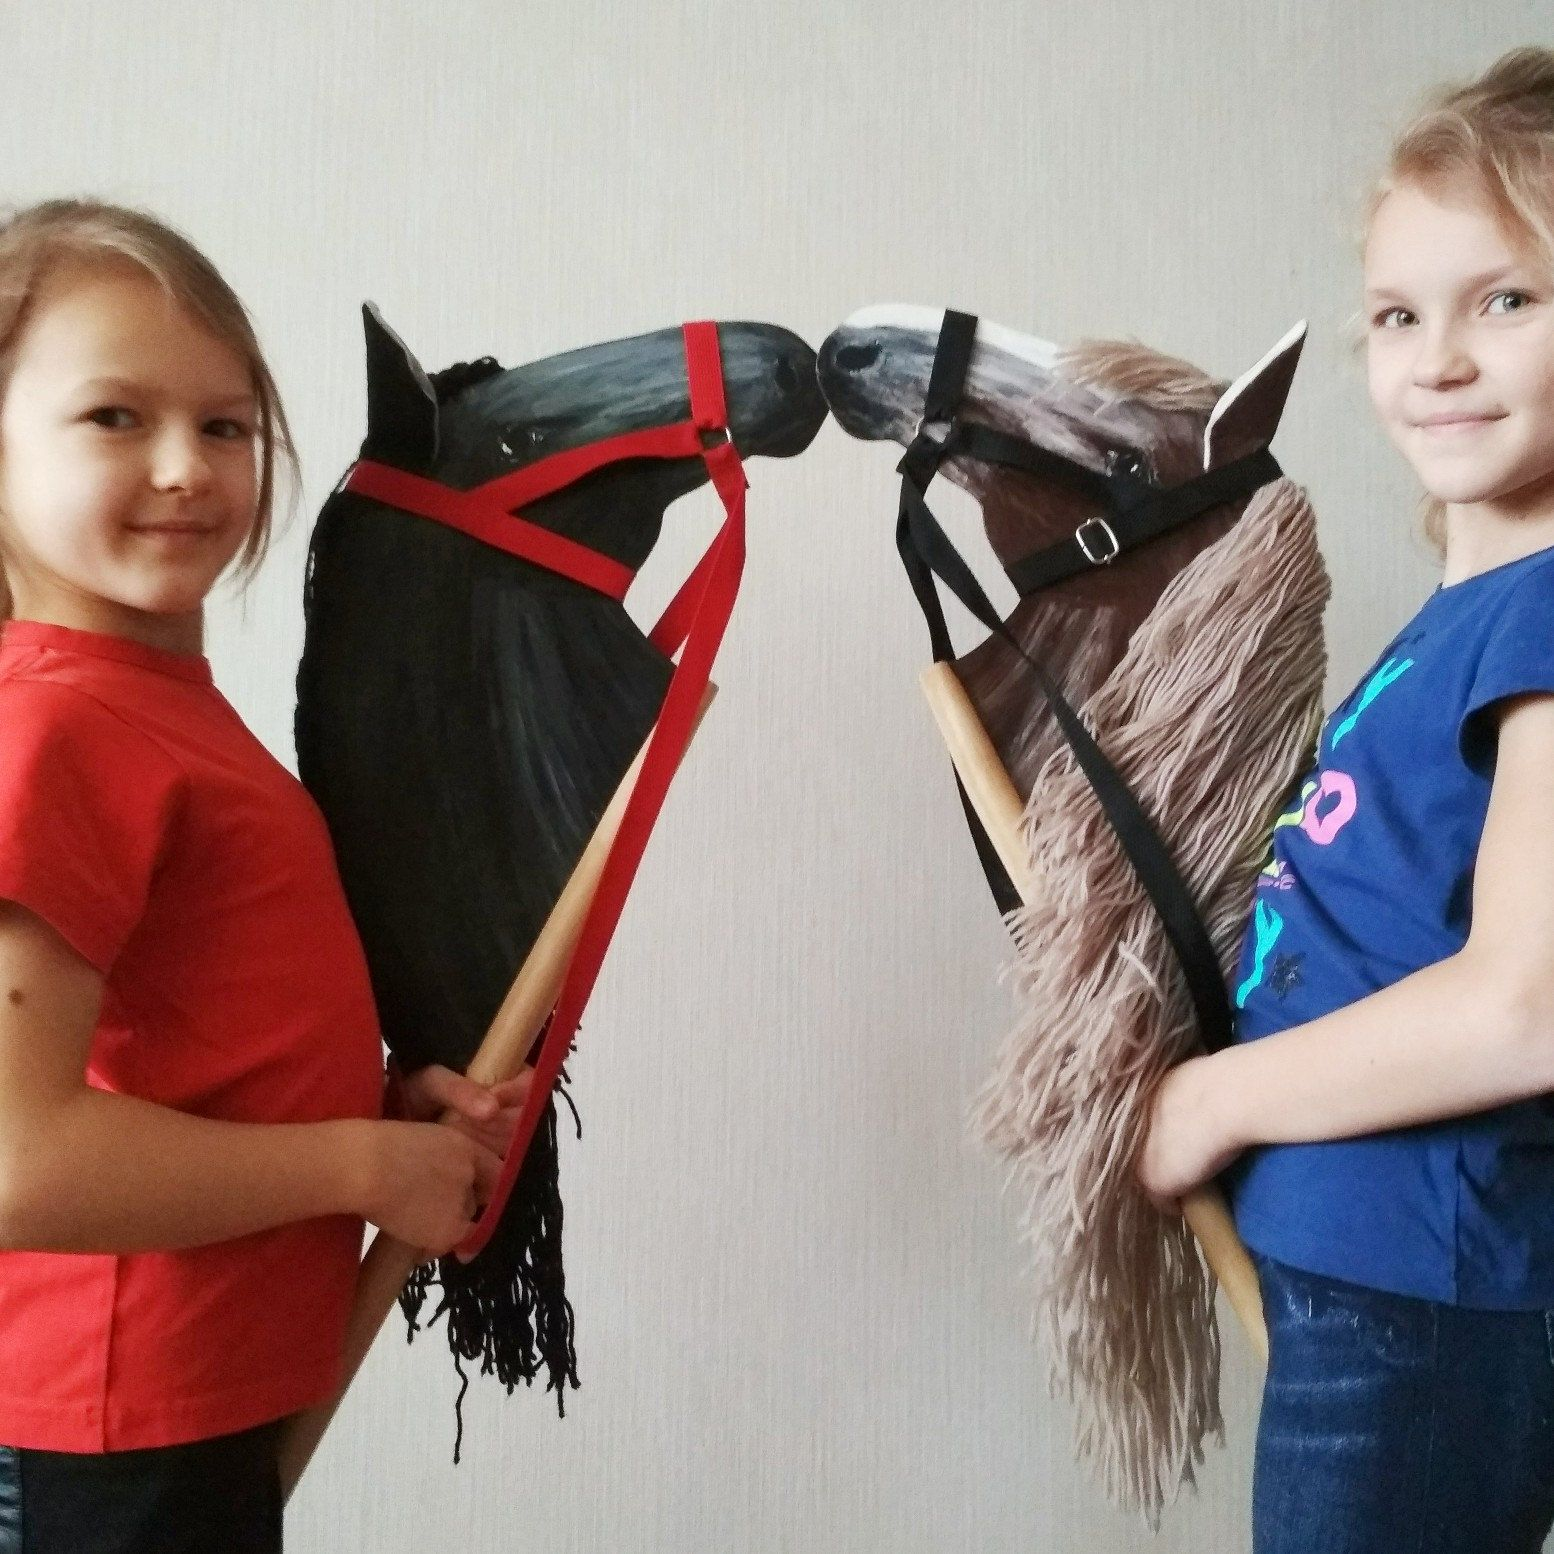 Hobby horse twins games twins toy easter gift horse children gift hobby horse twins games twins toy easter gift horse children gift stick horse wooden rocking horse wooden toy toy horse gift for horse lover negle Gallery